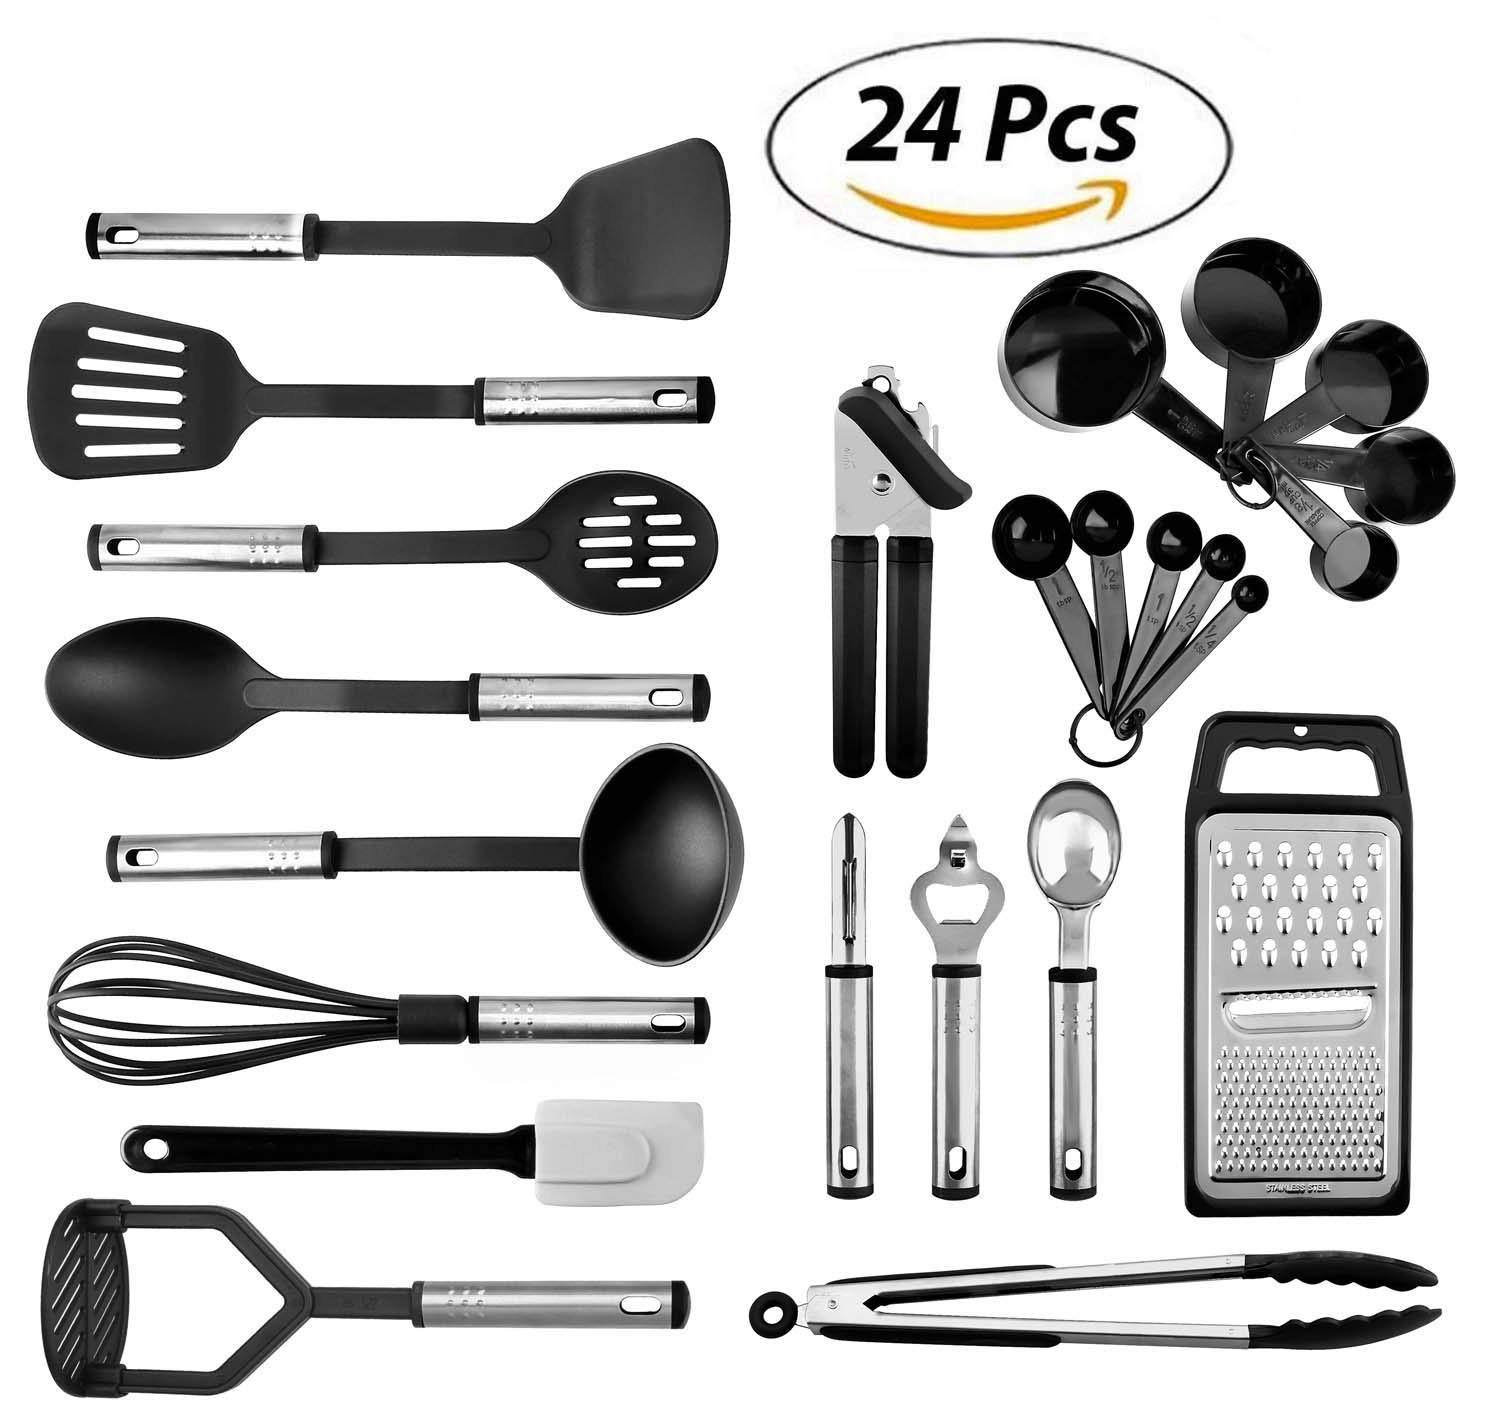 Kitchen Utensils set - 24 Nylon Stainless Steel Cooking Supplies - Non-Stick and Heat Resistant Cookware set - New Chef's Gadget Tools Collection - Best for Pots and Pans - Great Holiday Gift Idea by kaluns (Image #7)